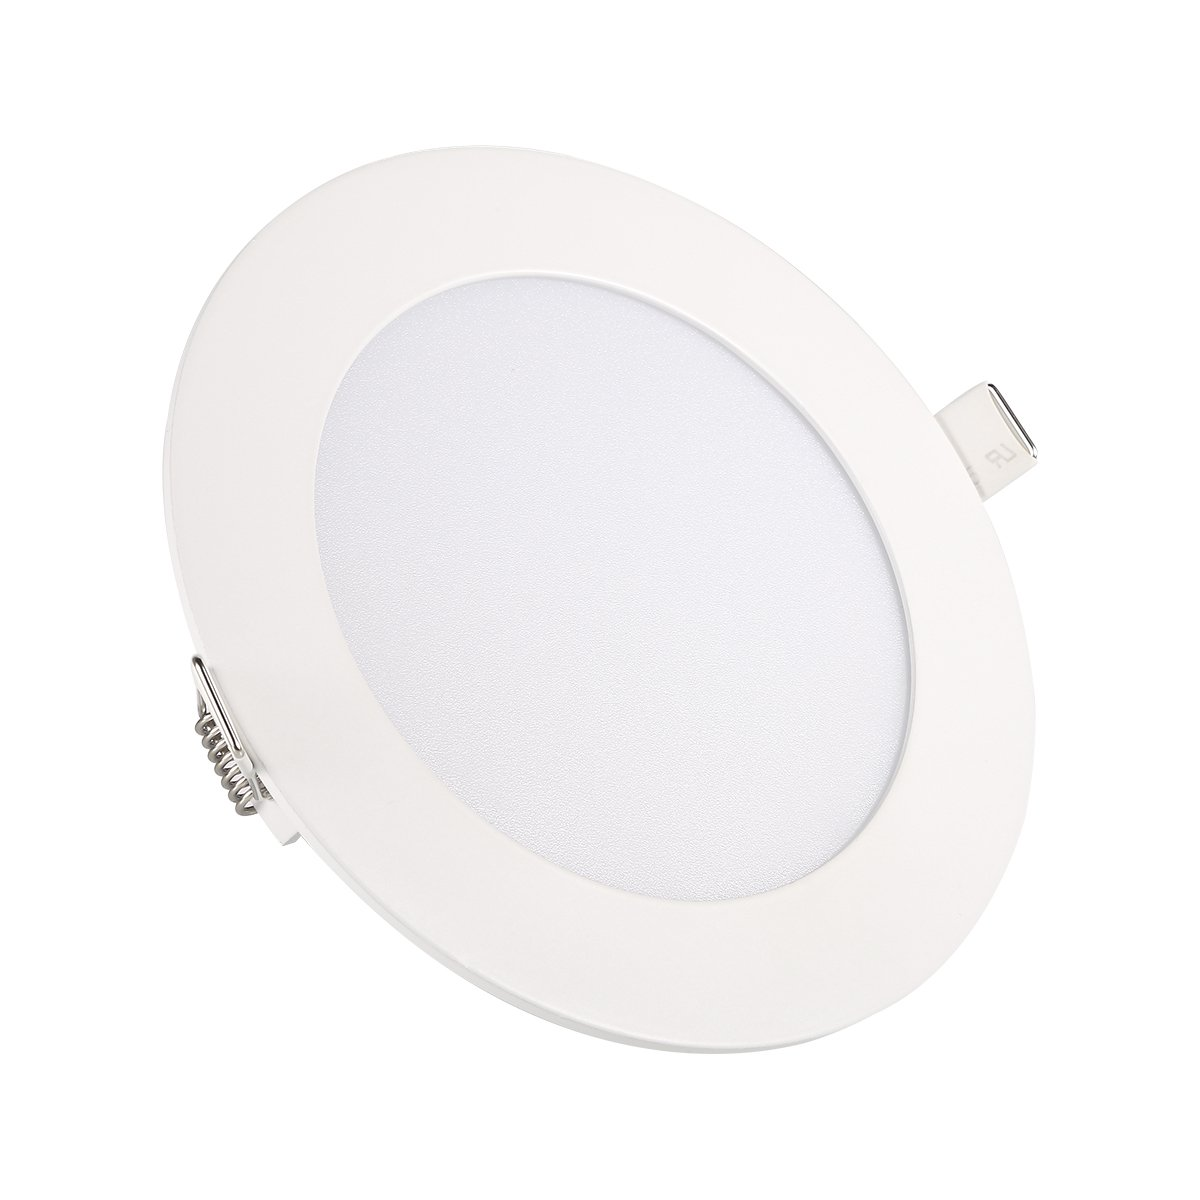 Ceiling Lights, TryLight 9 Watts 5 inch Dimmable Round LED Recessed Lighting Ultra-Thin for Home Office Commercial Lighting, 4000K Cool White